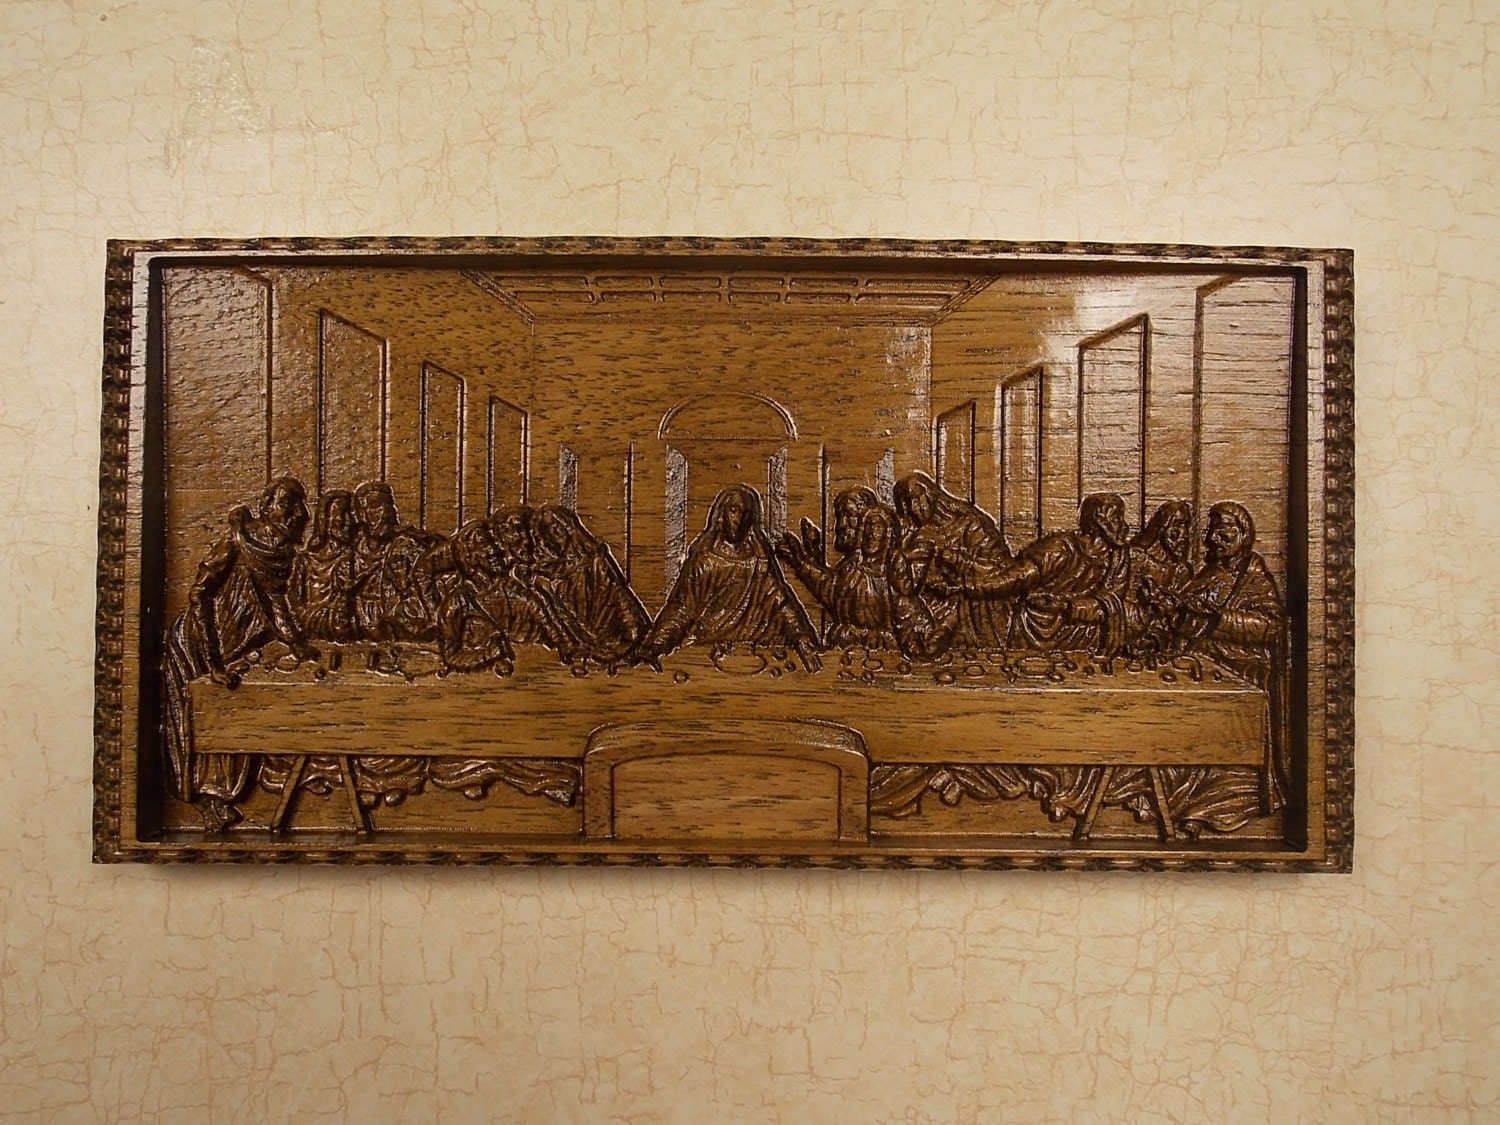 Leonardo da Vinci The Last Supper Wall Decor CNC 3D Wooden